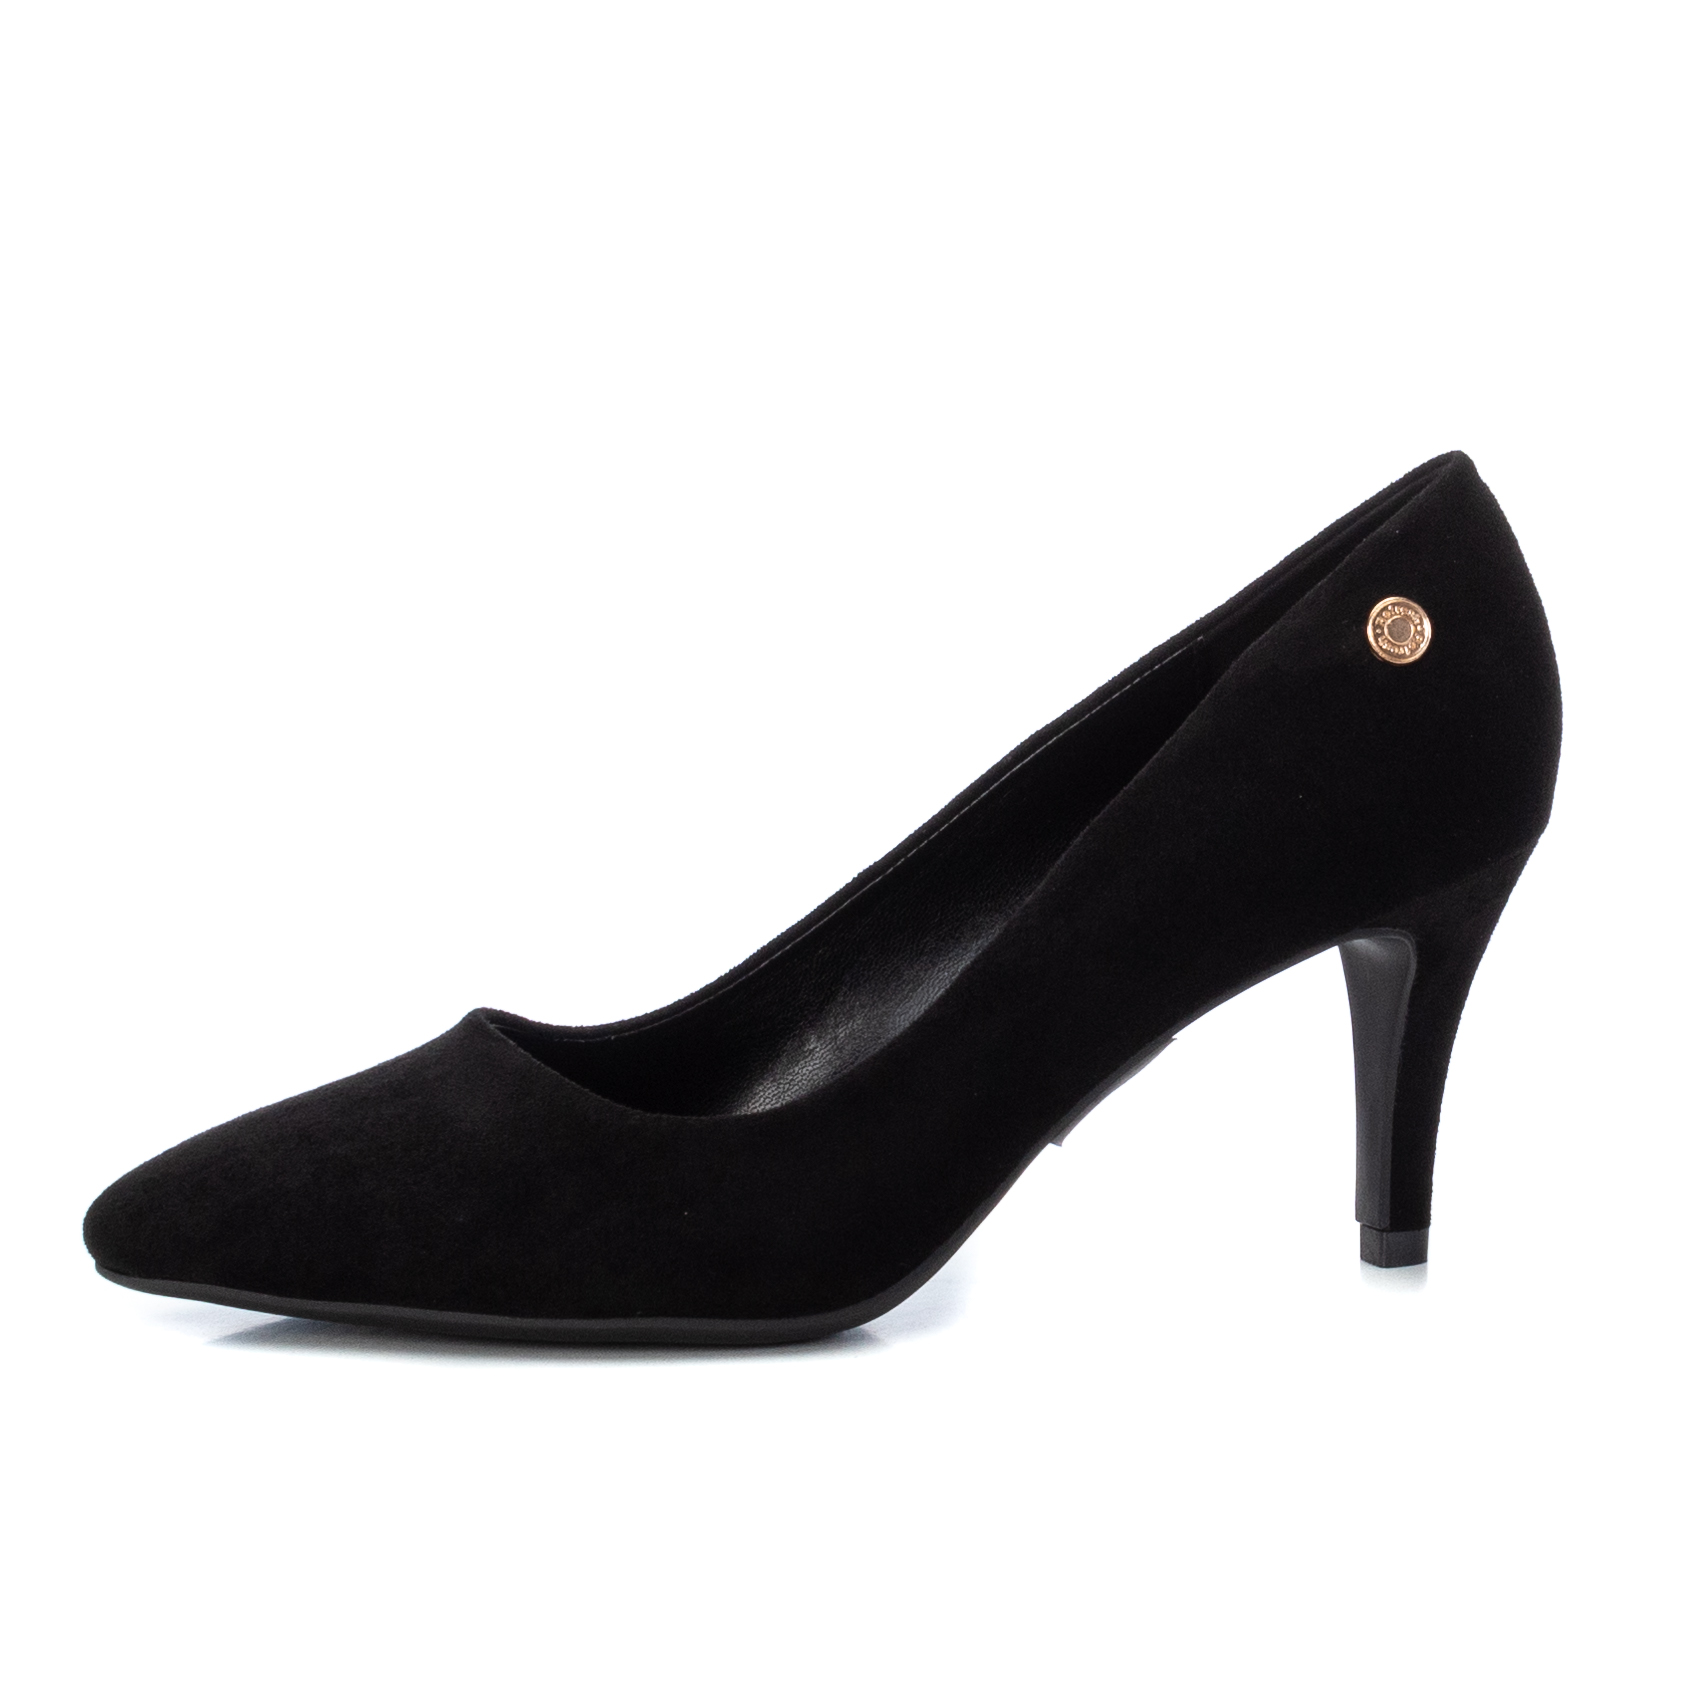 Refresh Court Shoes are a classic pair of heels in a faux black suede available on colmershill.com